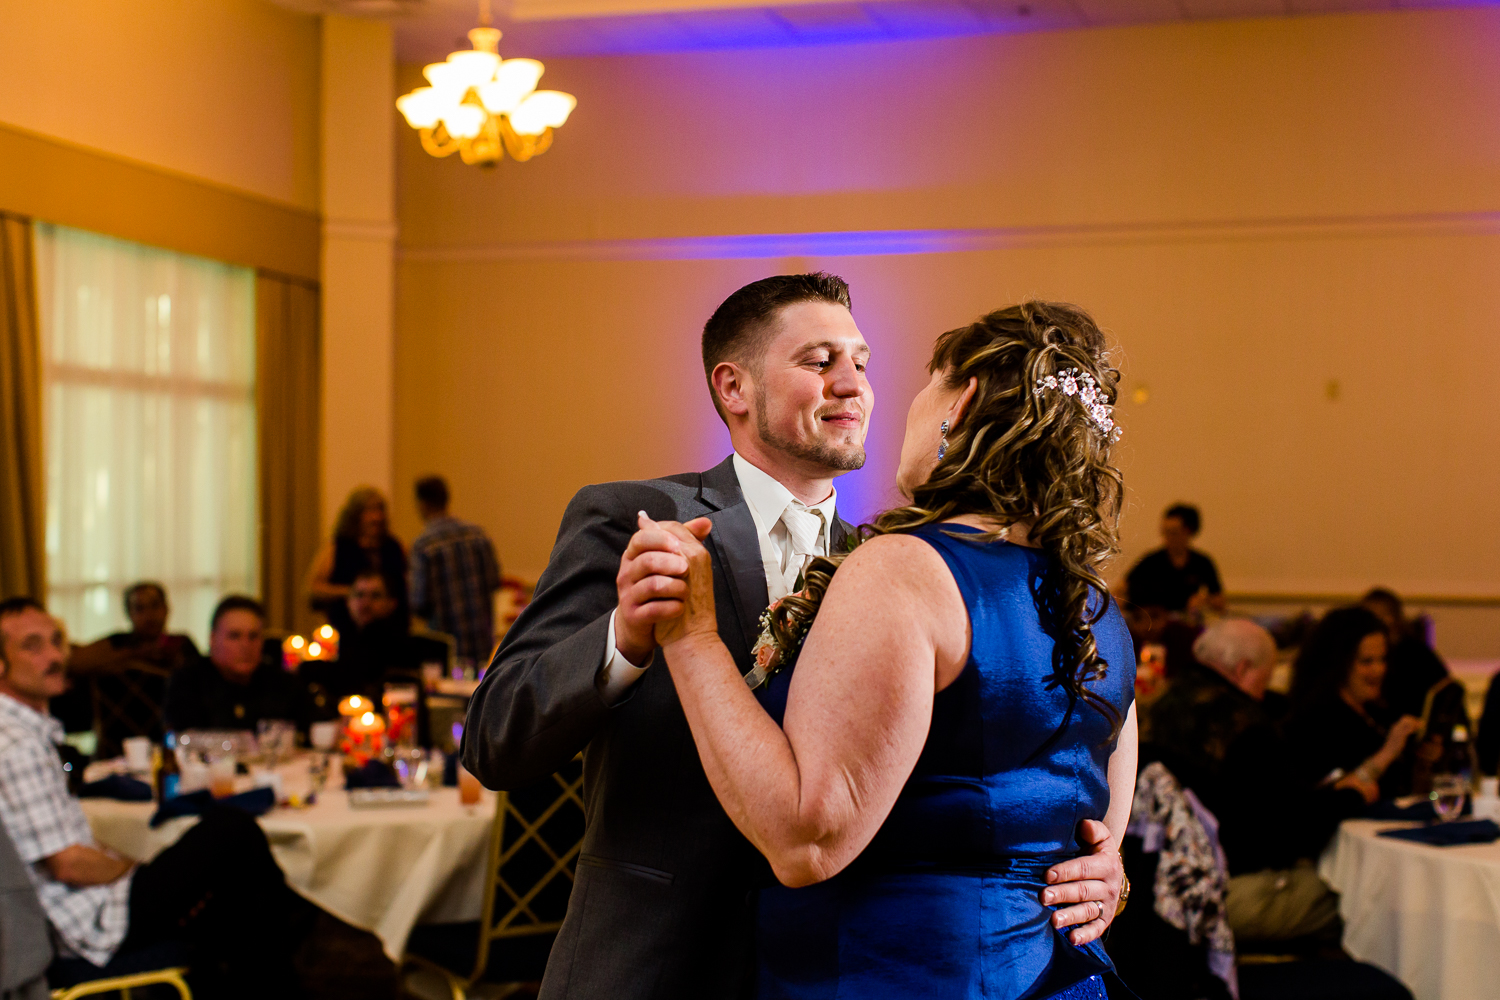 The groom looks fondly at his mother during the mother son dance at his wedding reception.